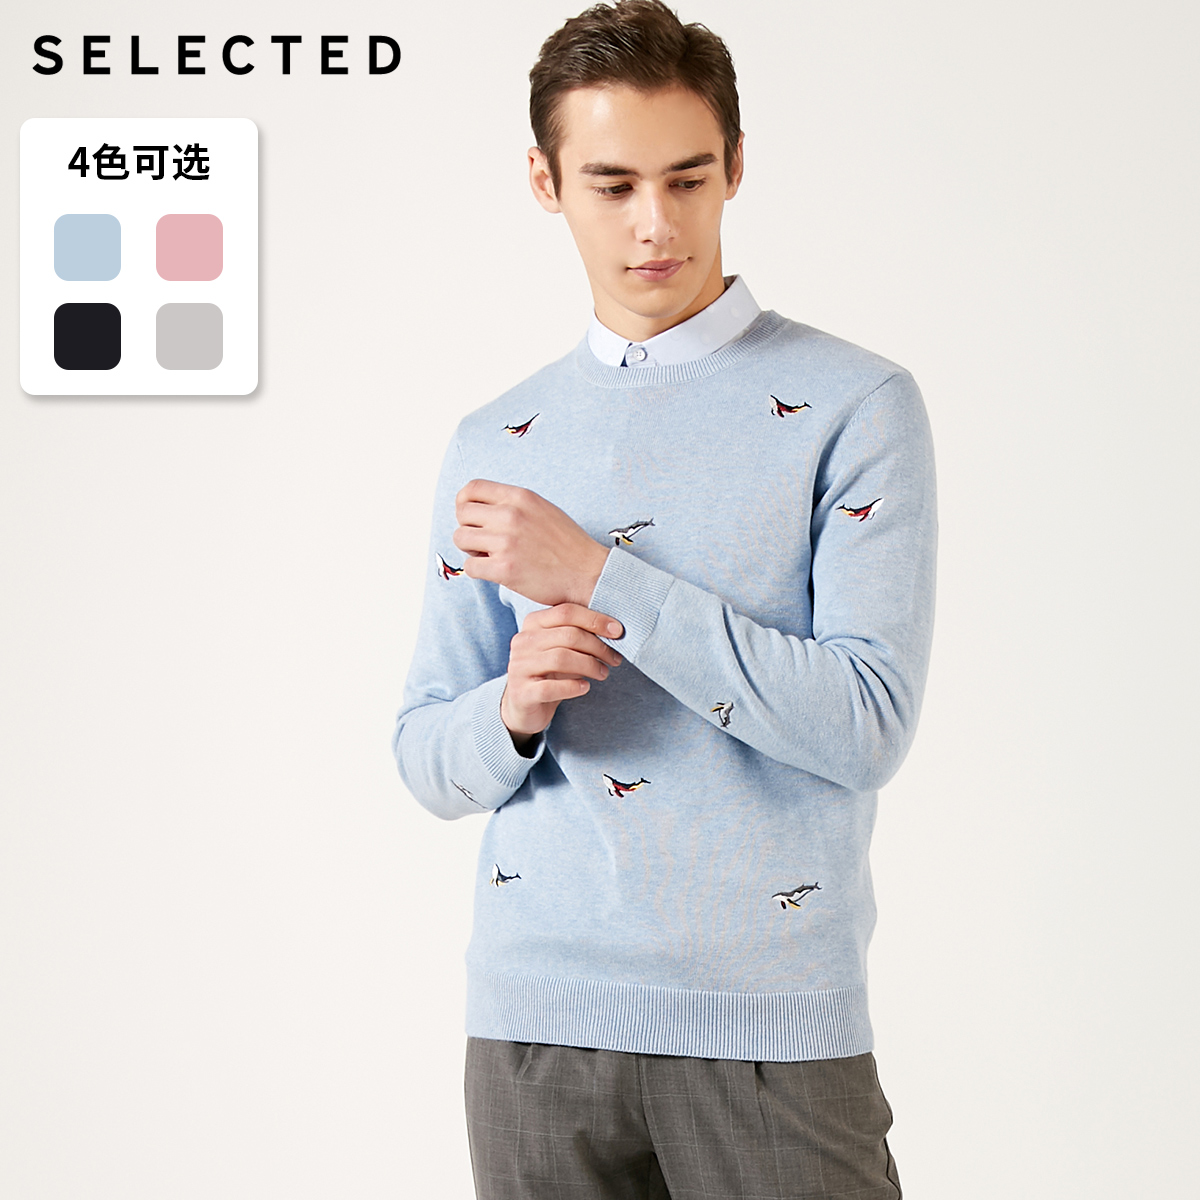 Image 2 - SELECTED Mens 100% Cotton Animal Embroidery Pullovers Sweater New Casual Knit Clothes C  419124539Pullovers